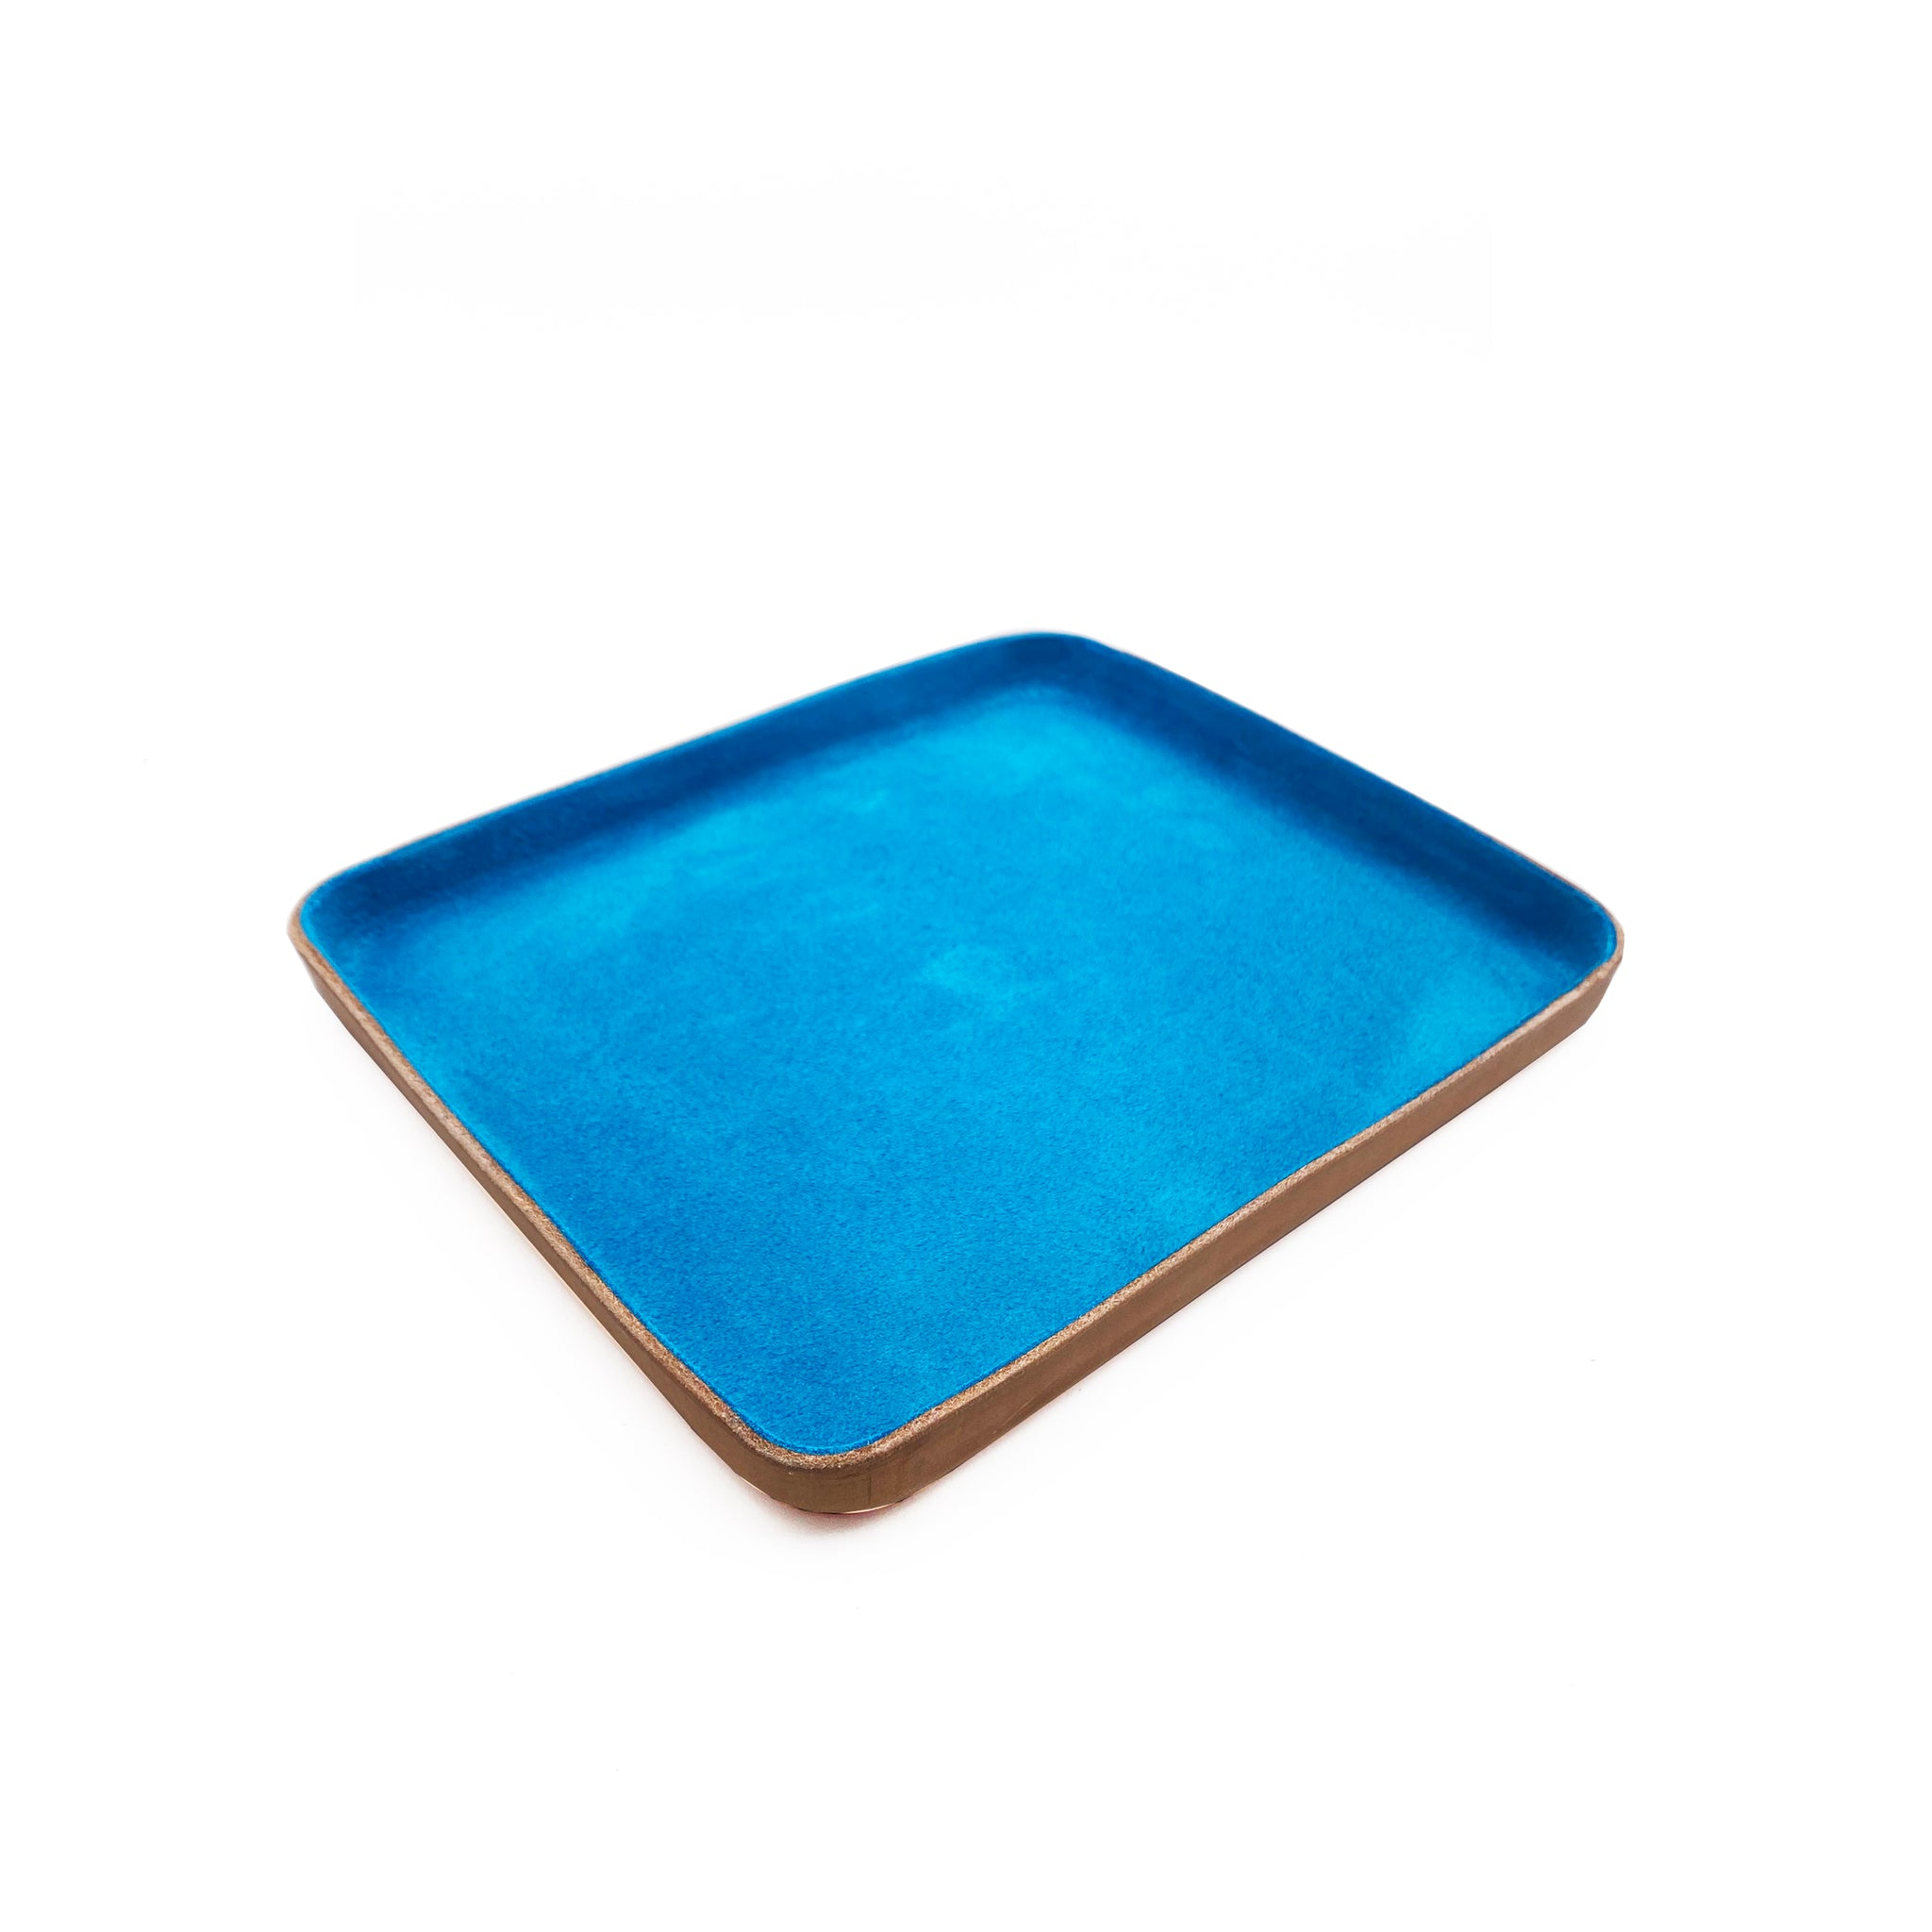 Leather Jewelry Tray, Large, Turquoise Blue